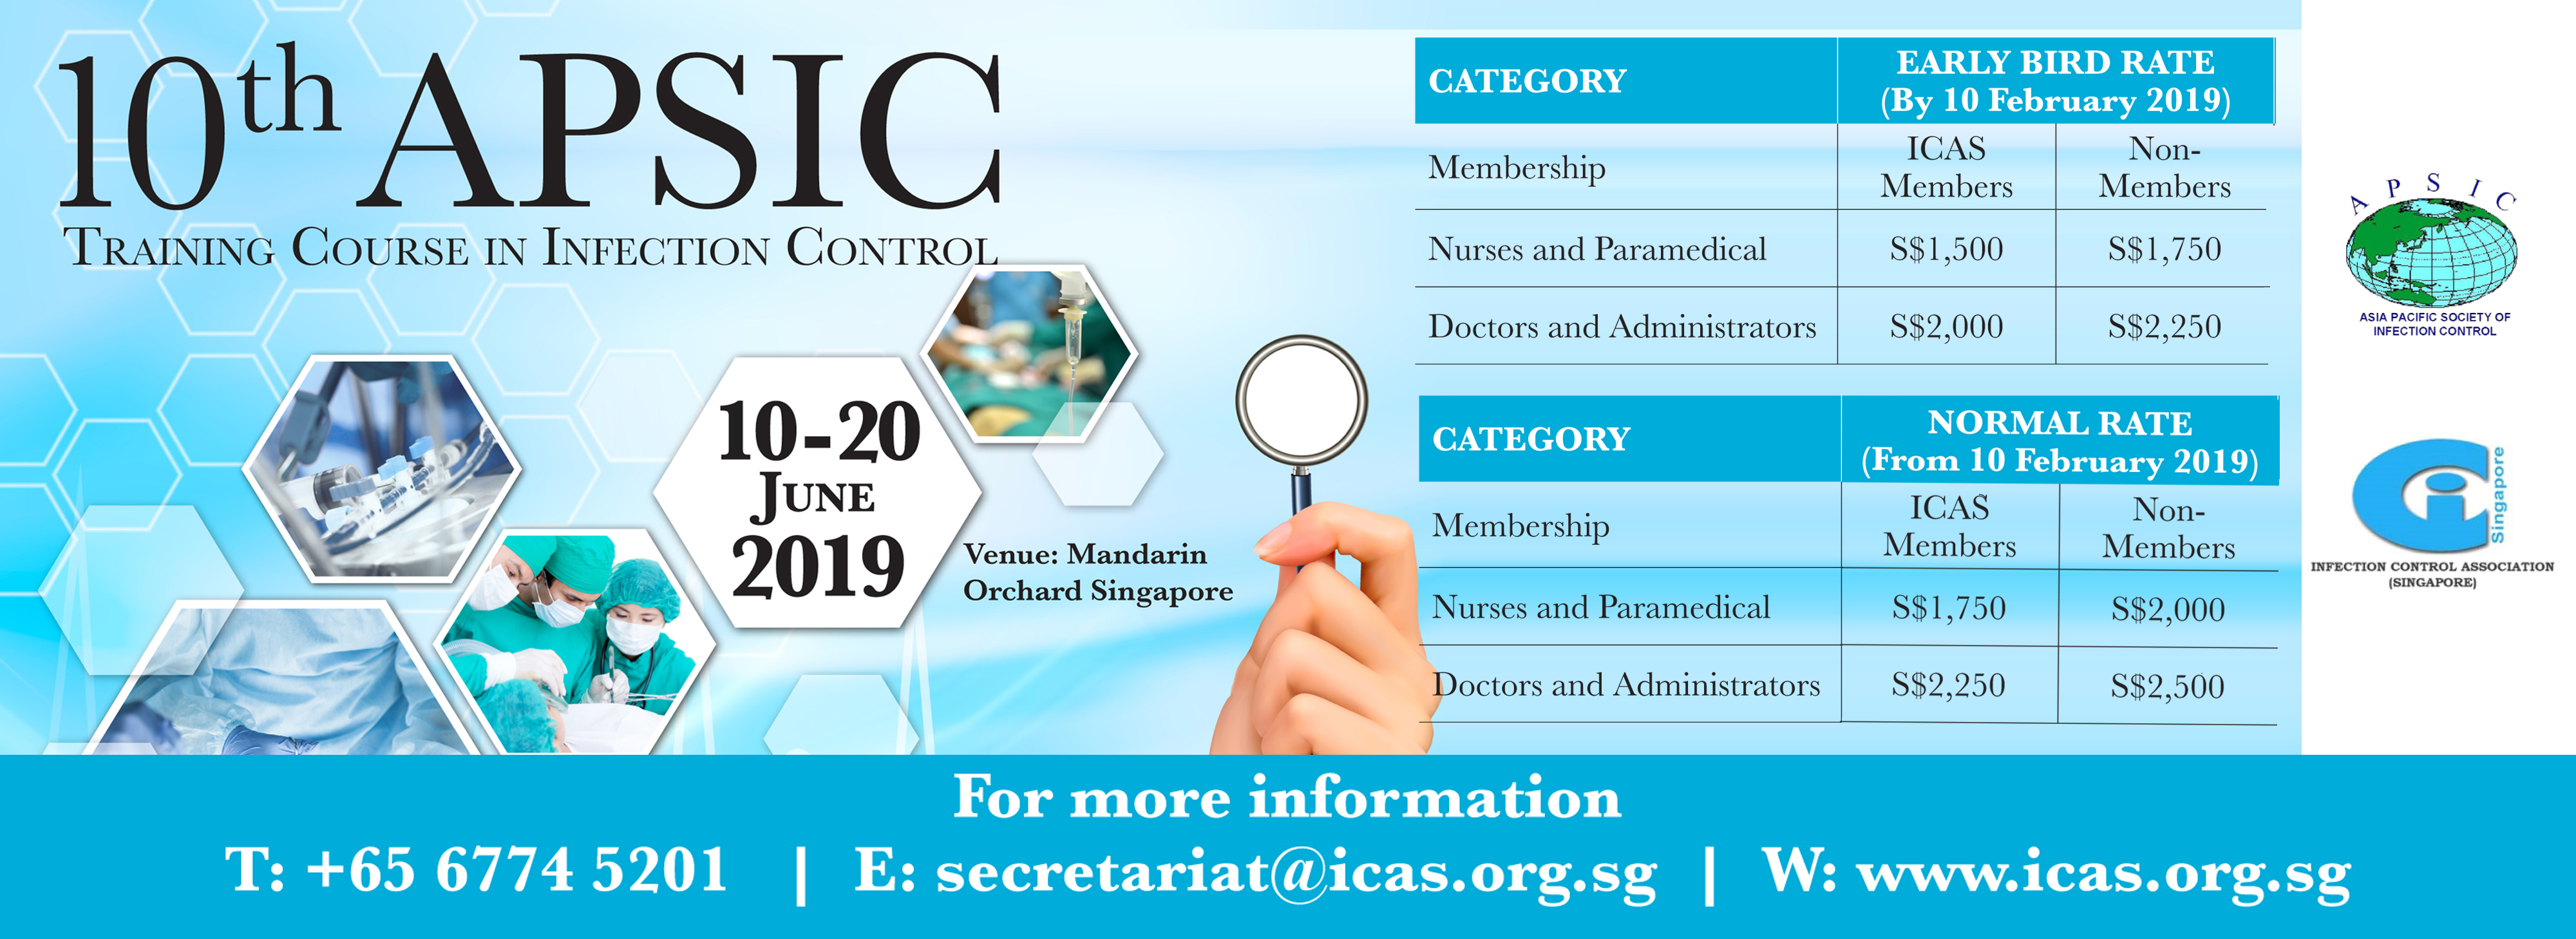 10th APSIC Training Course in Infection Control